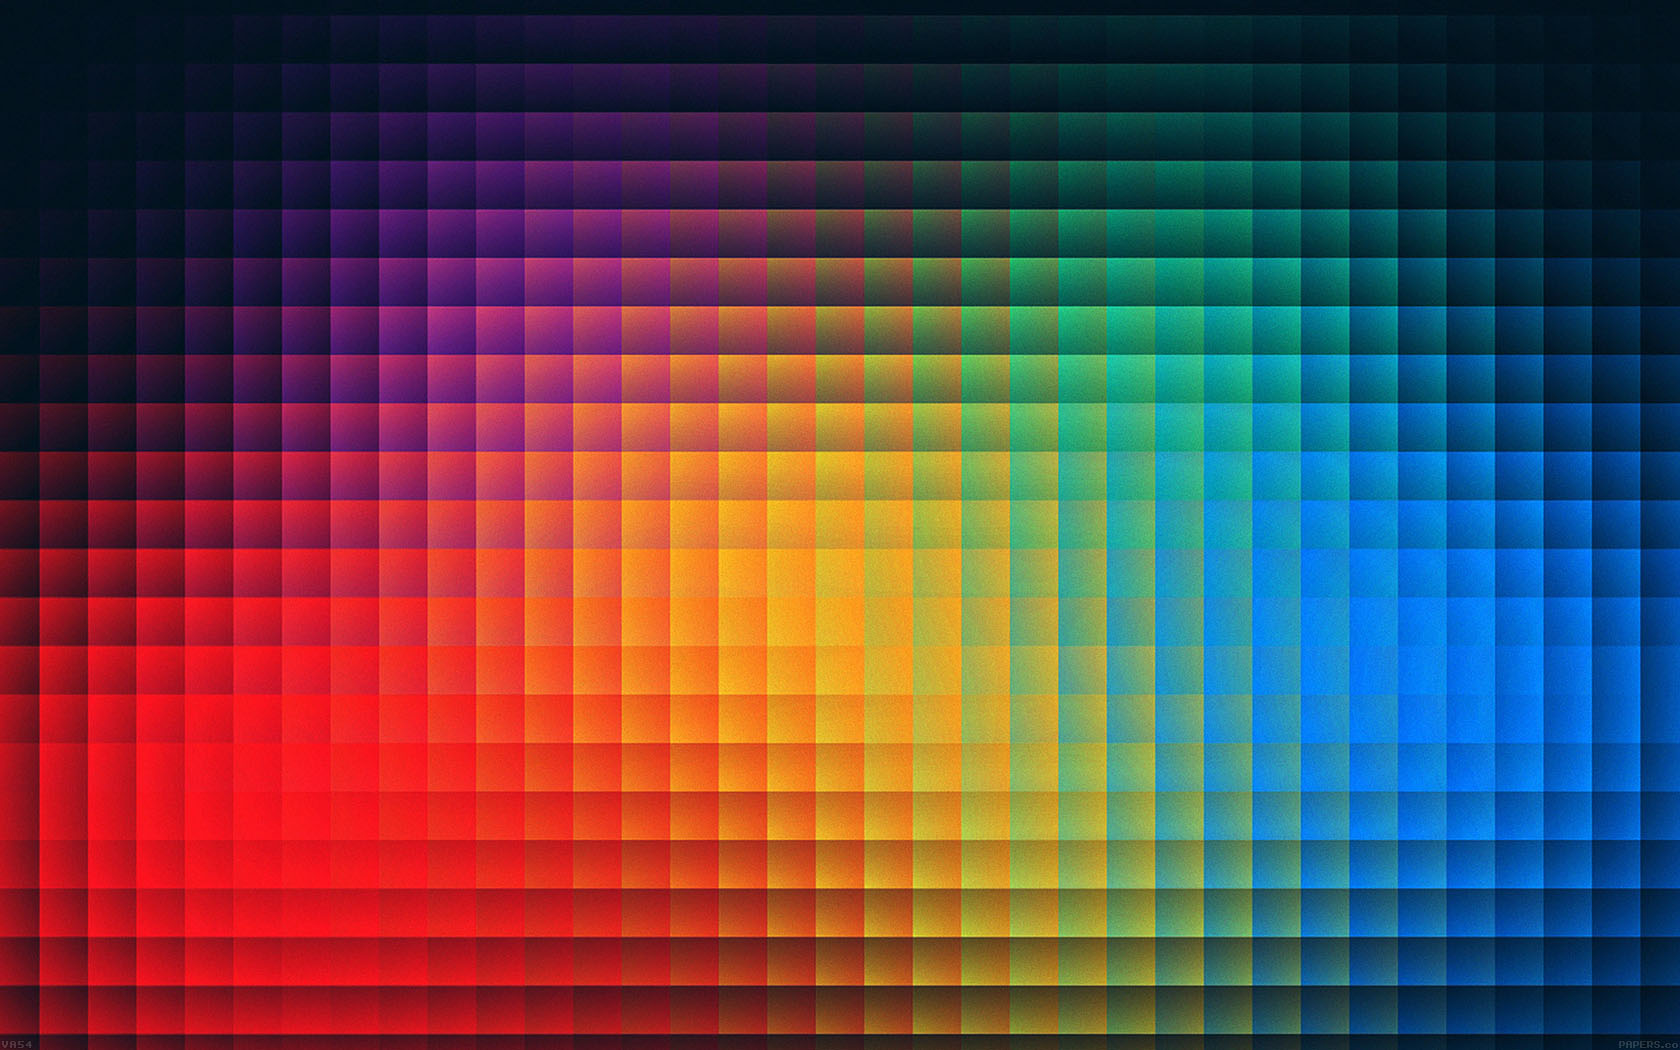 pixel rainbow wallpaper google - photo #11